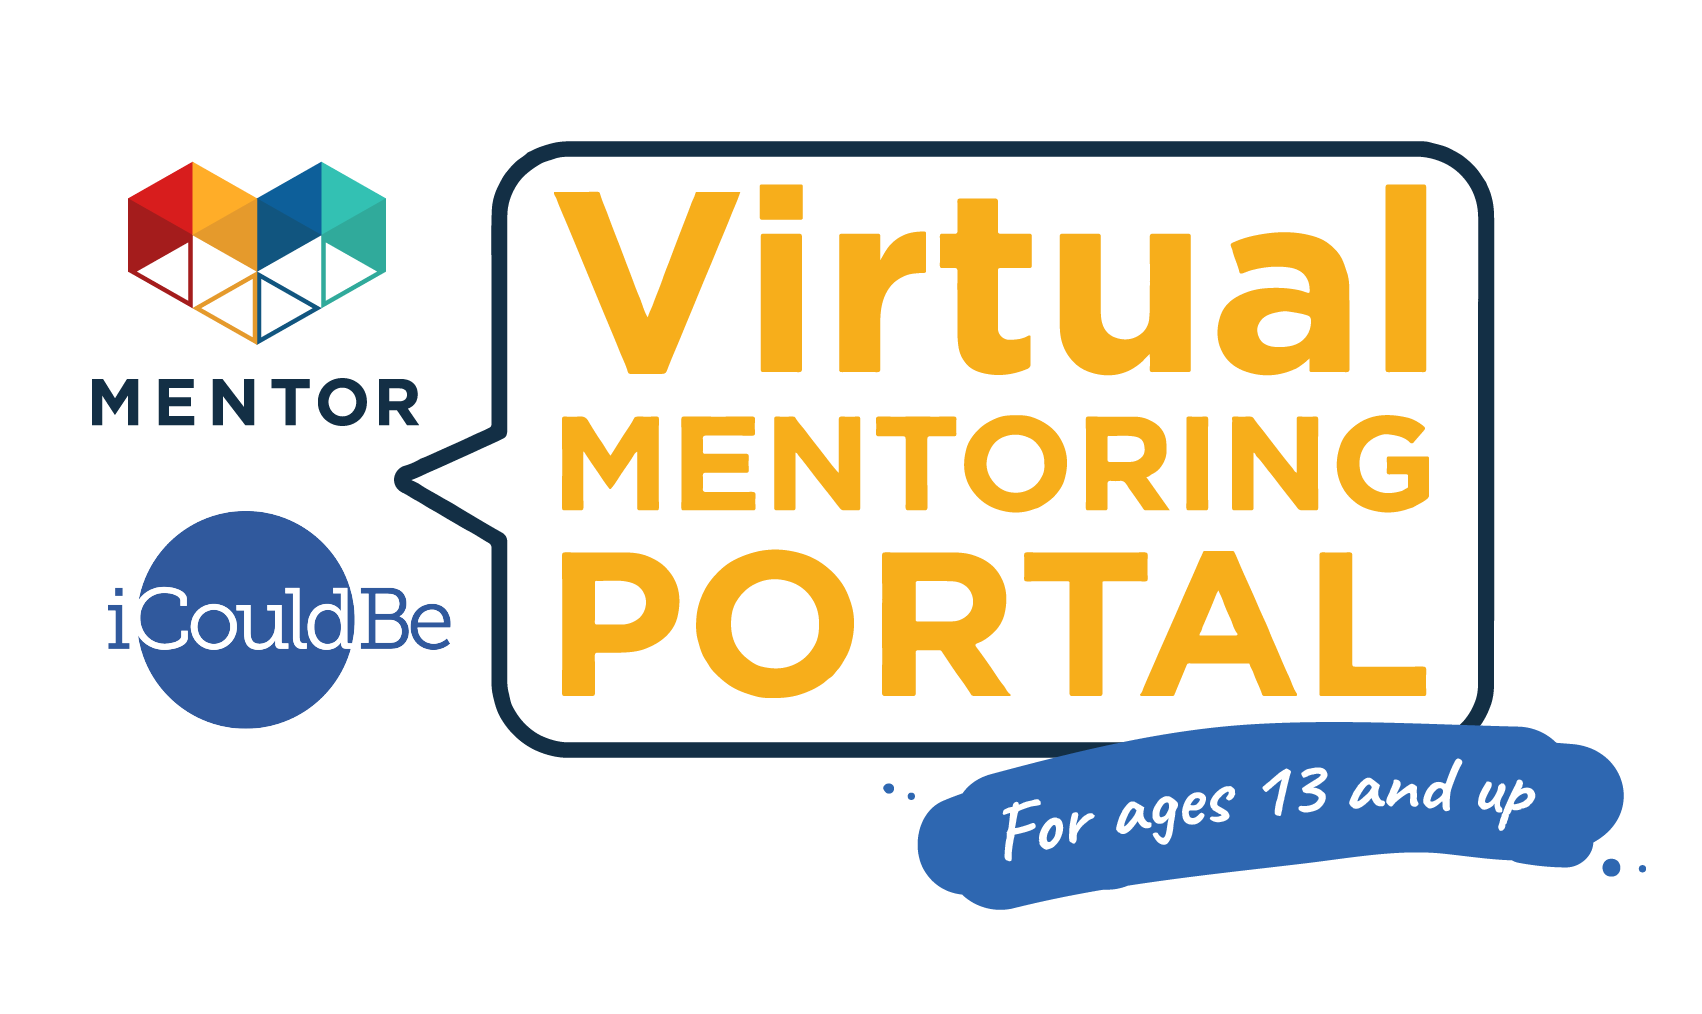 Mentoring for 13 year olds and up